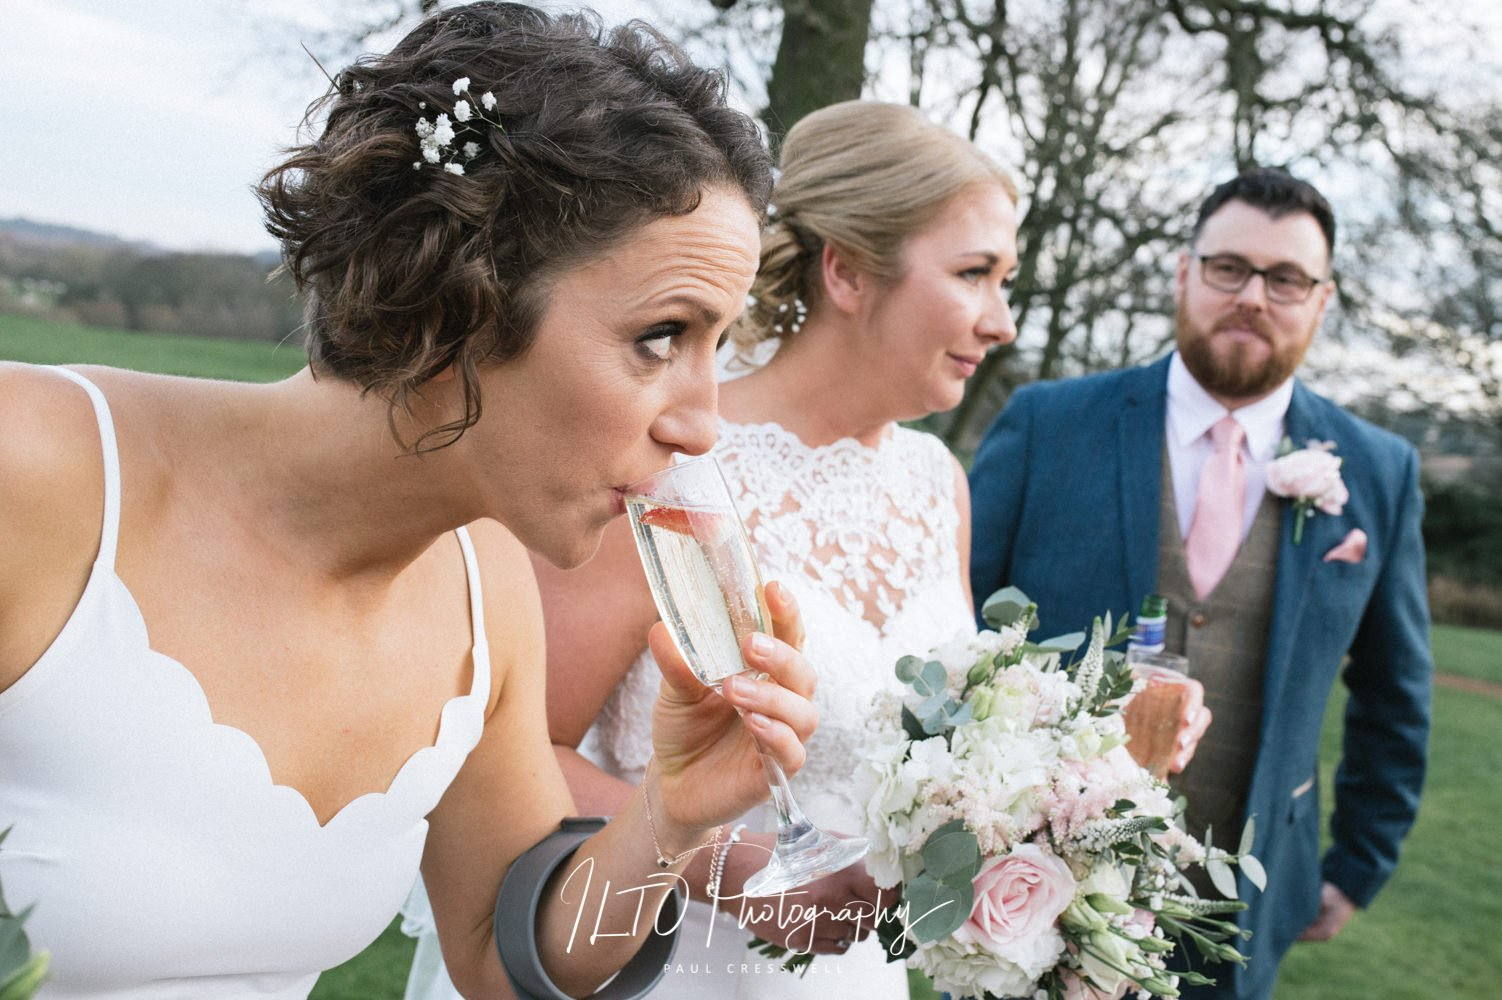 funny bridesmaid wedding photography ideas, ILTO Photography west Yorkshire wedding photographer